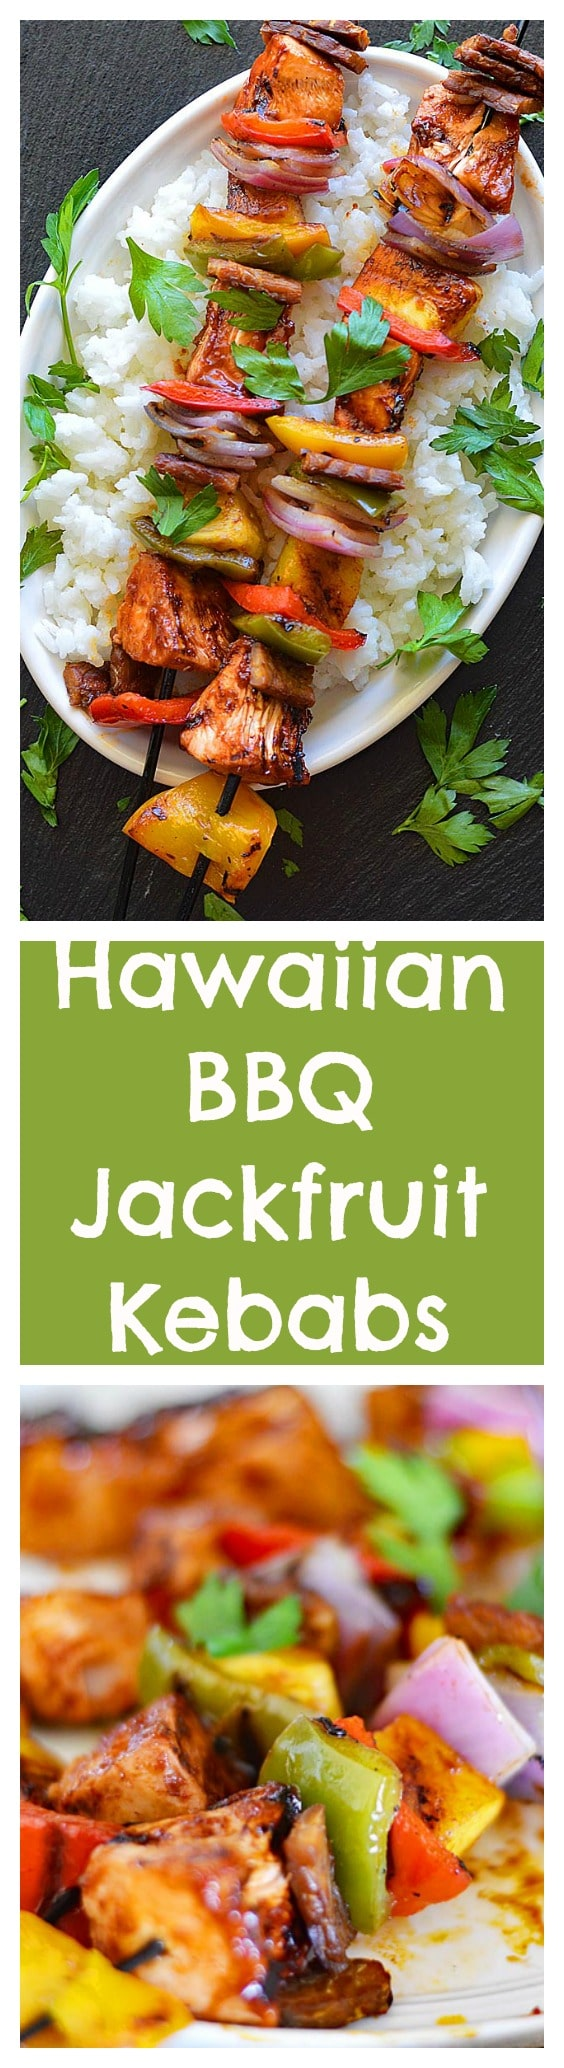 Hawaiian Jackfruit Pineapple Kebabs